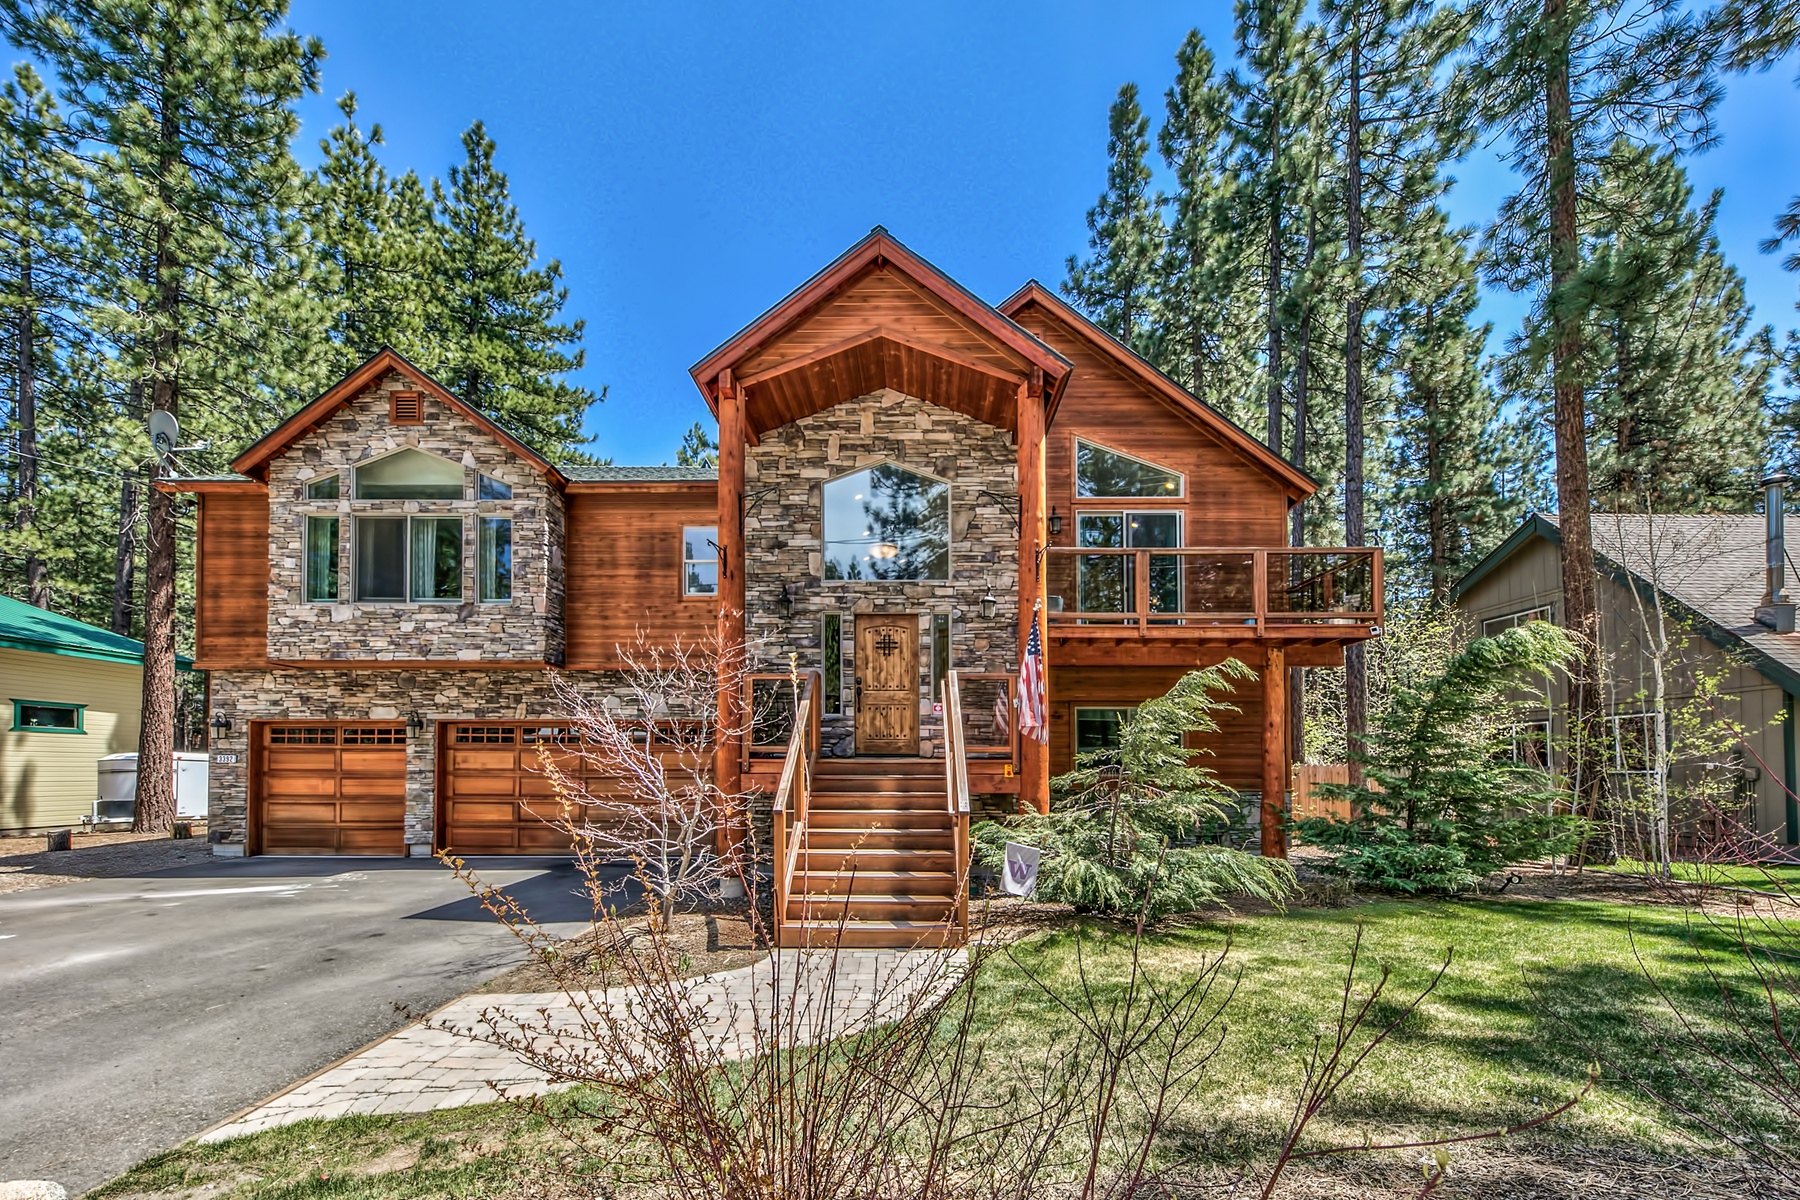 Property for Active at 3392 Hobart Rd., South Lake Tahoe, CA 3392 Hobart Rd. South Lake Tahoe, California 96150 United States